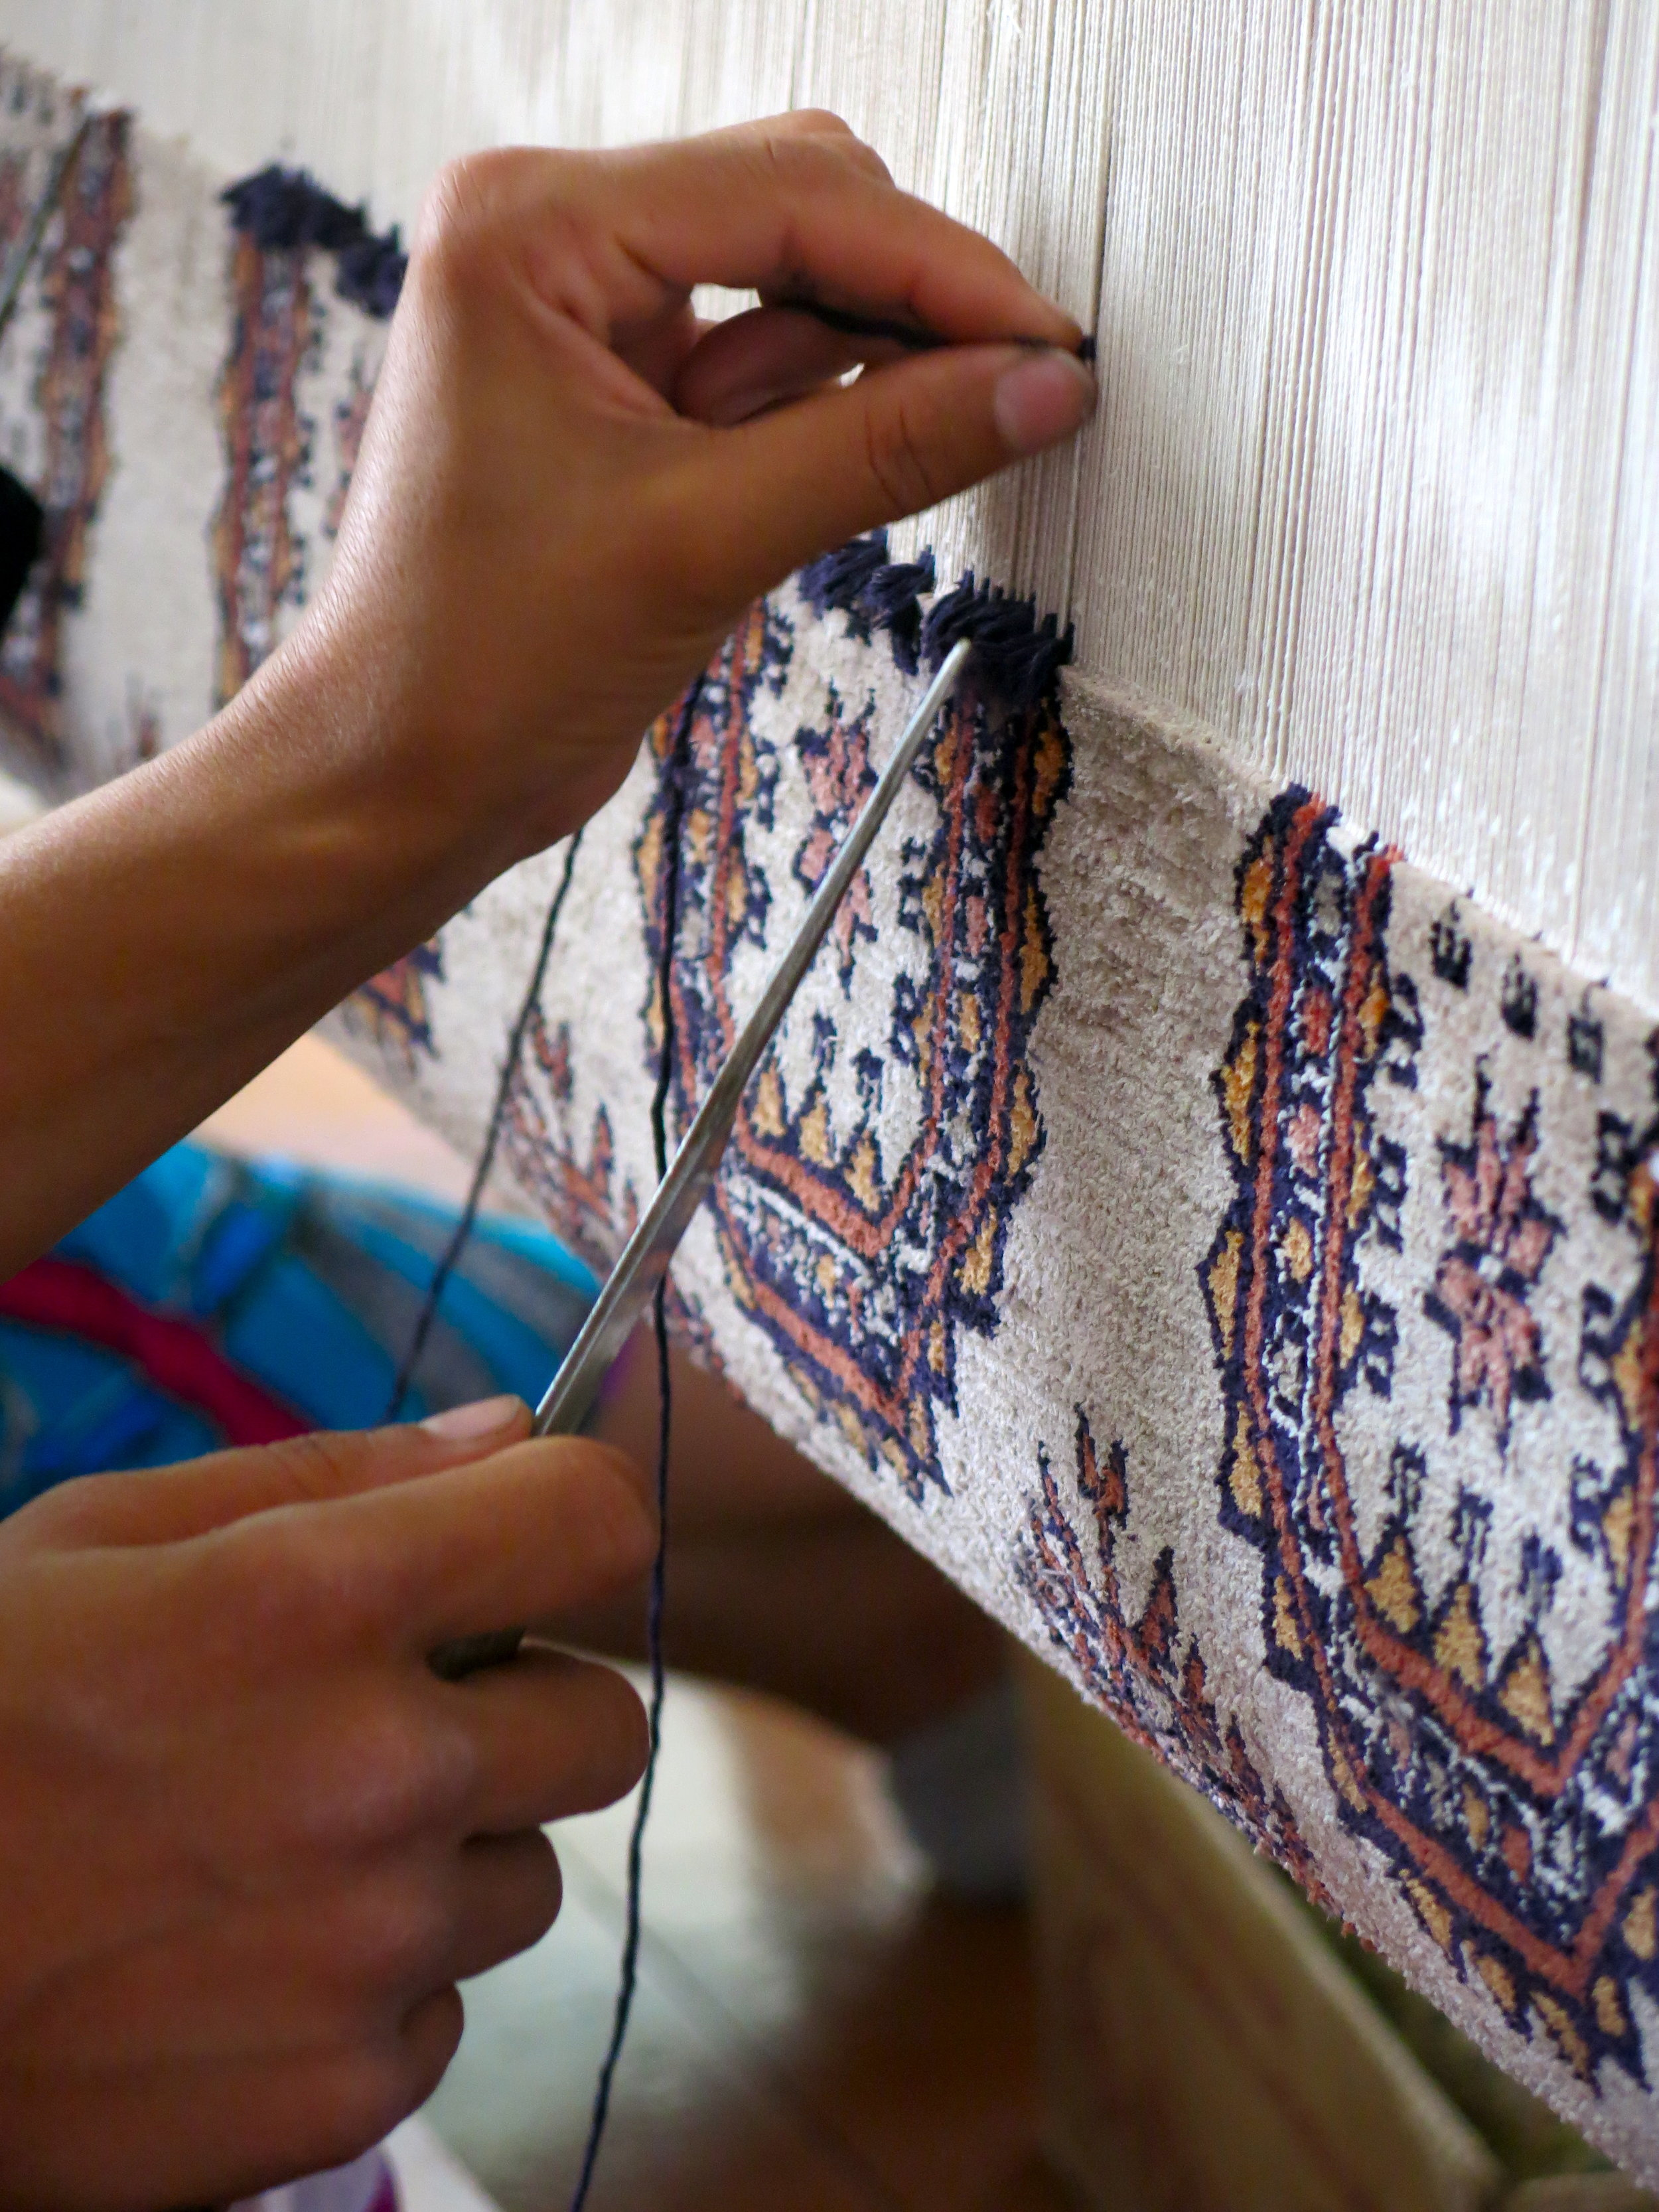 Observing the precision of the gesture of carpet weavers